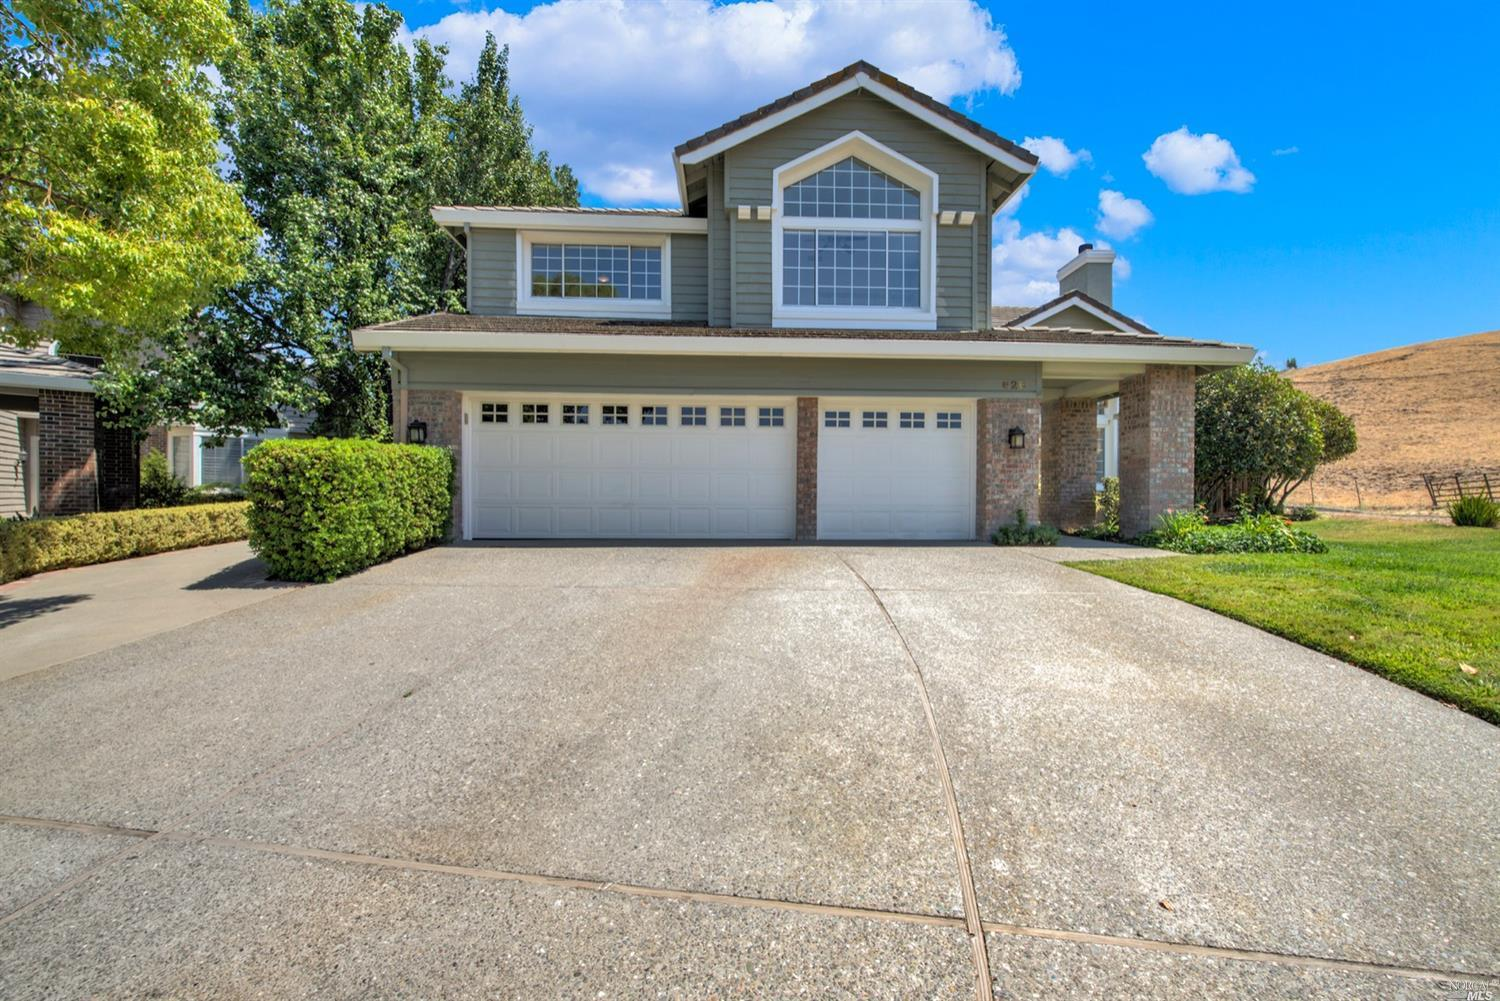 A must see spacious and incredibly beautiful 5-bedroom, 3-bath, two story home nestled in a secluded